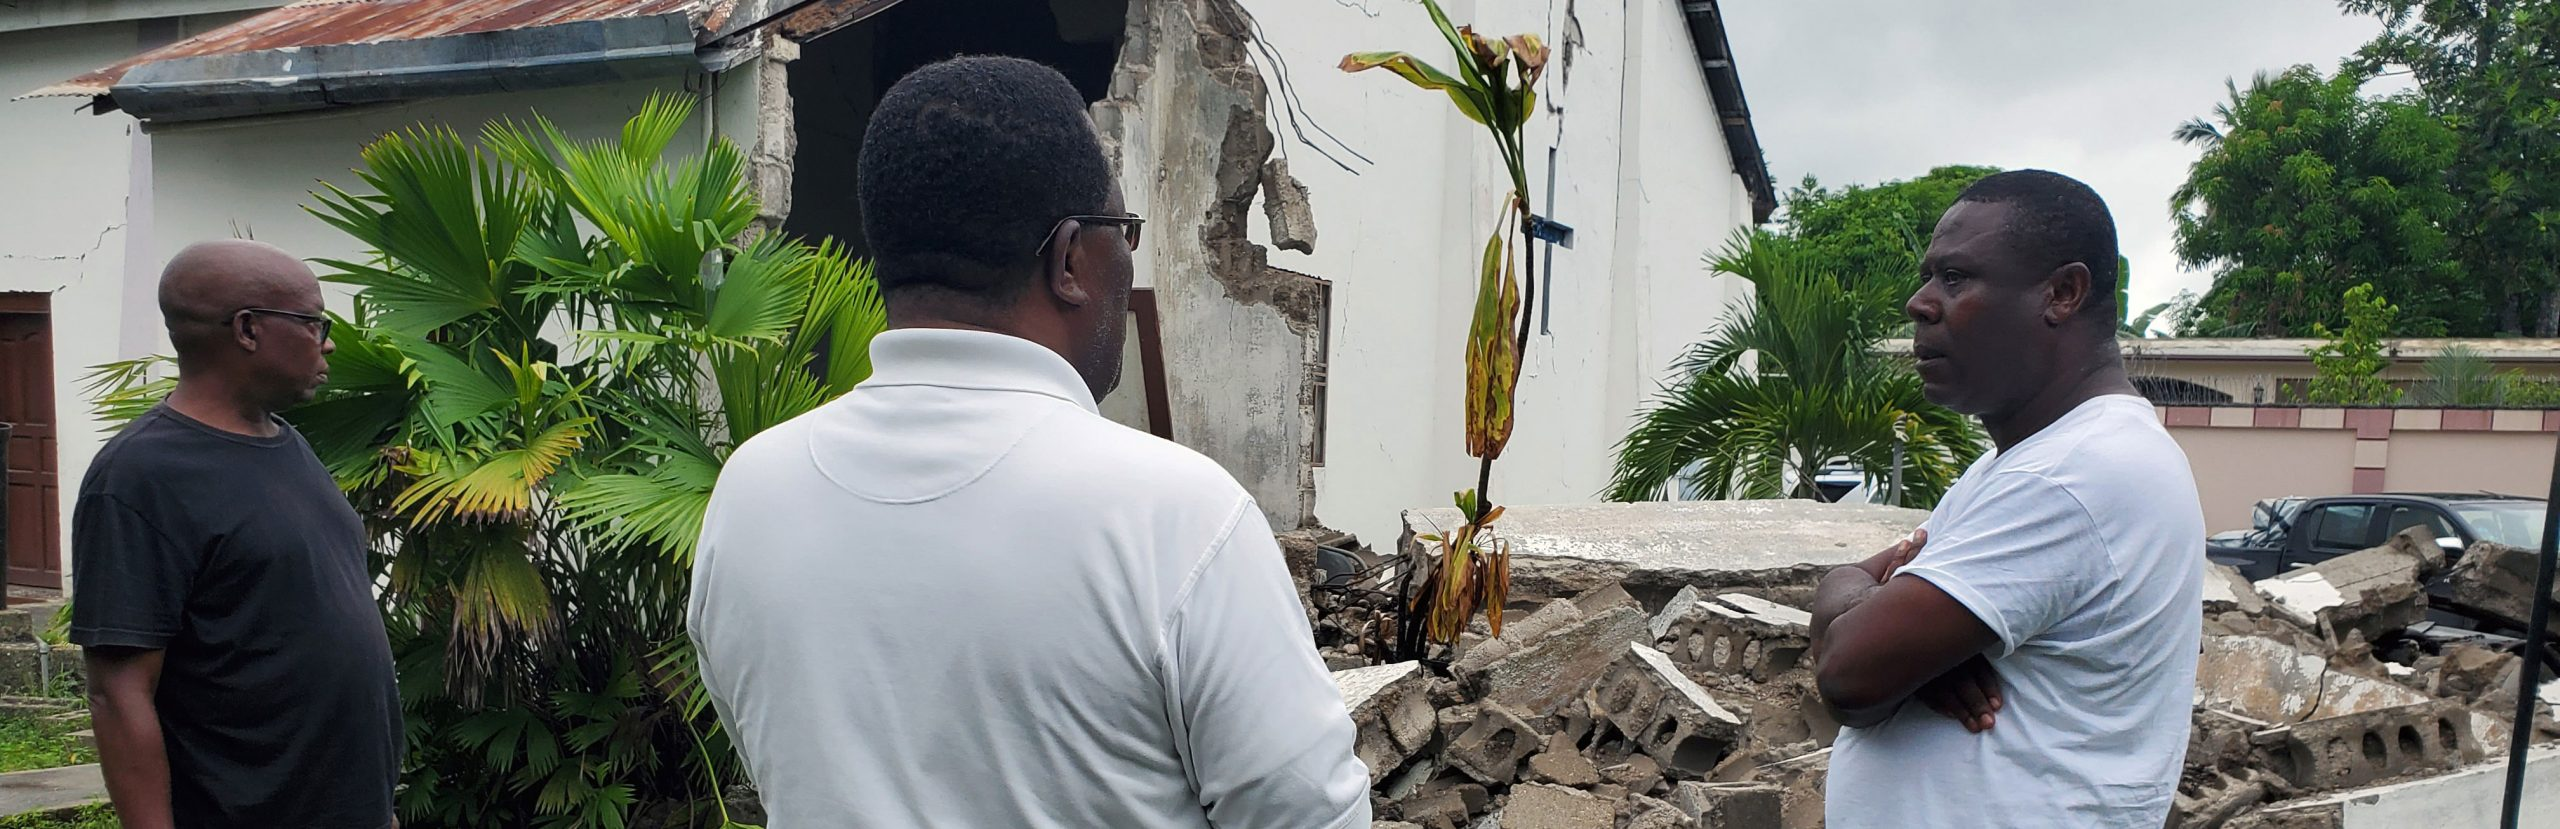 Haiti: Jesuits get involved after the earthquake of 14 August